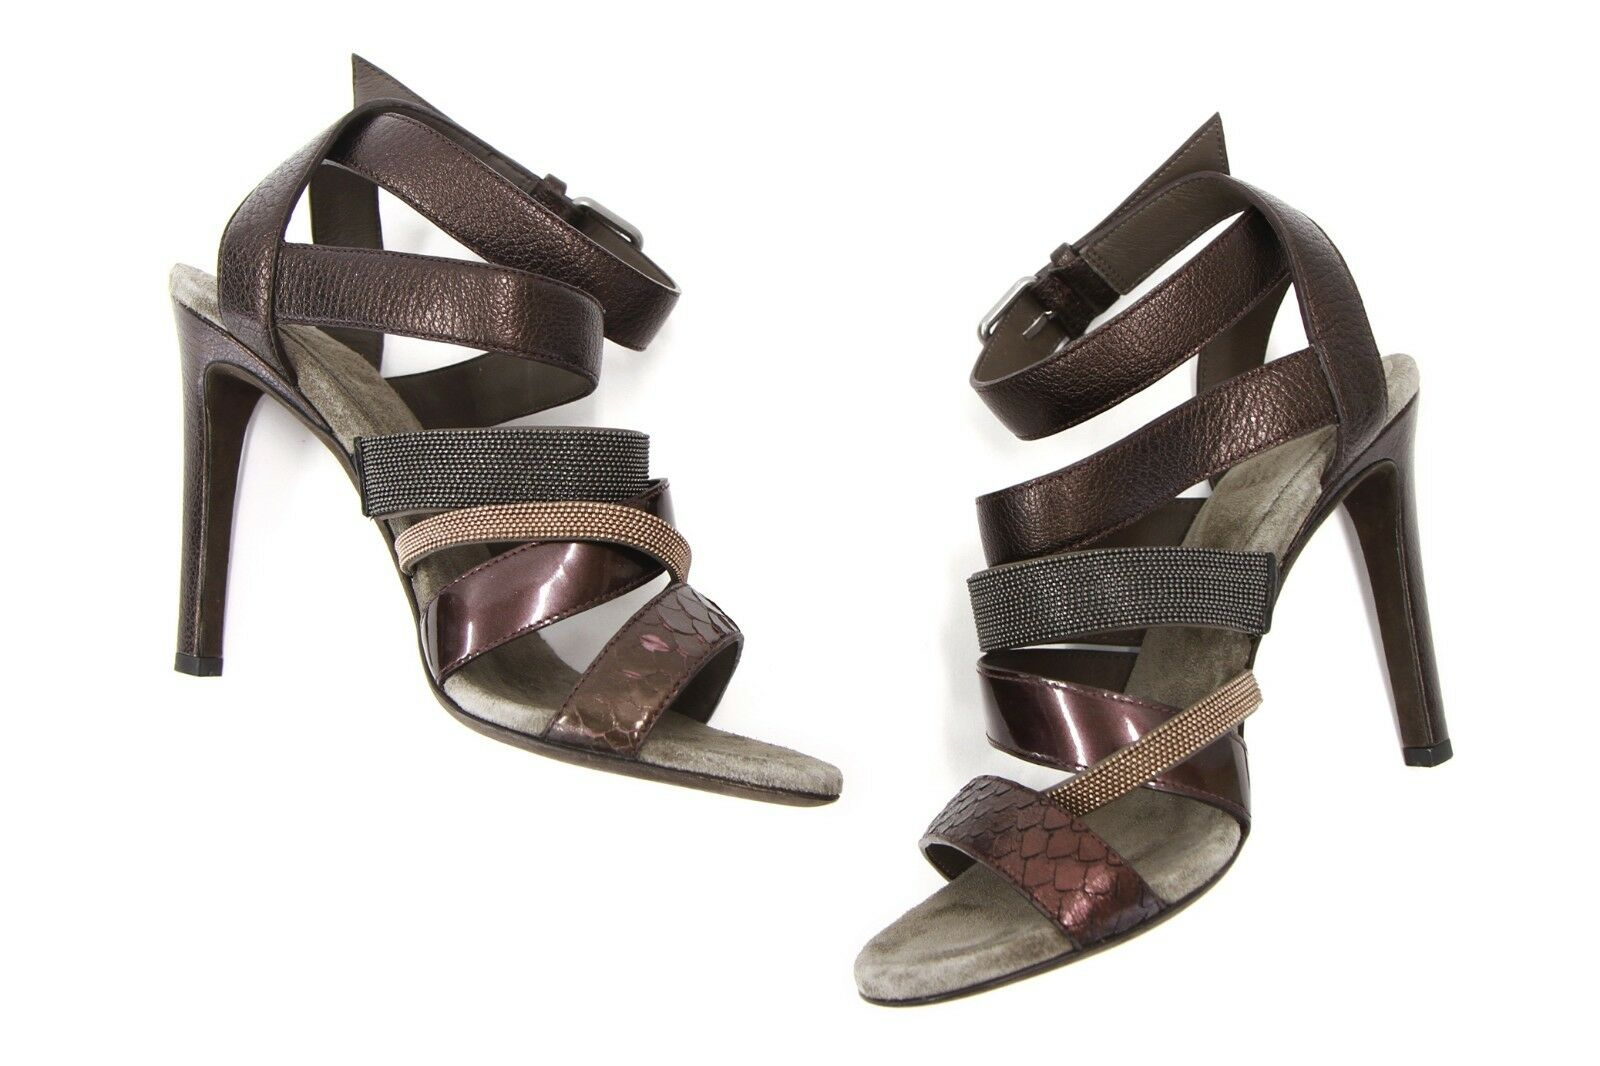 NWOB 1595 Brunello Cucinelli Multi-Leather Monili Strap Beaded Sandal37 7US A186